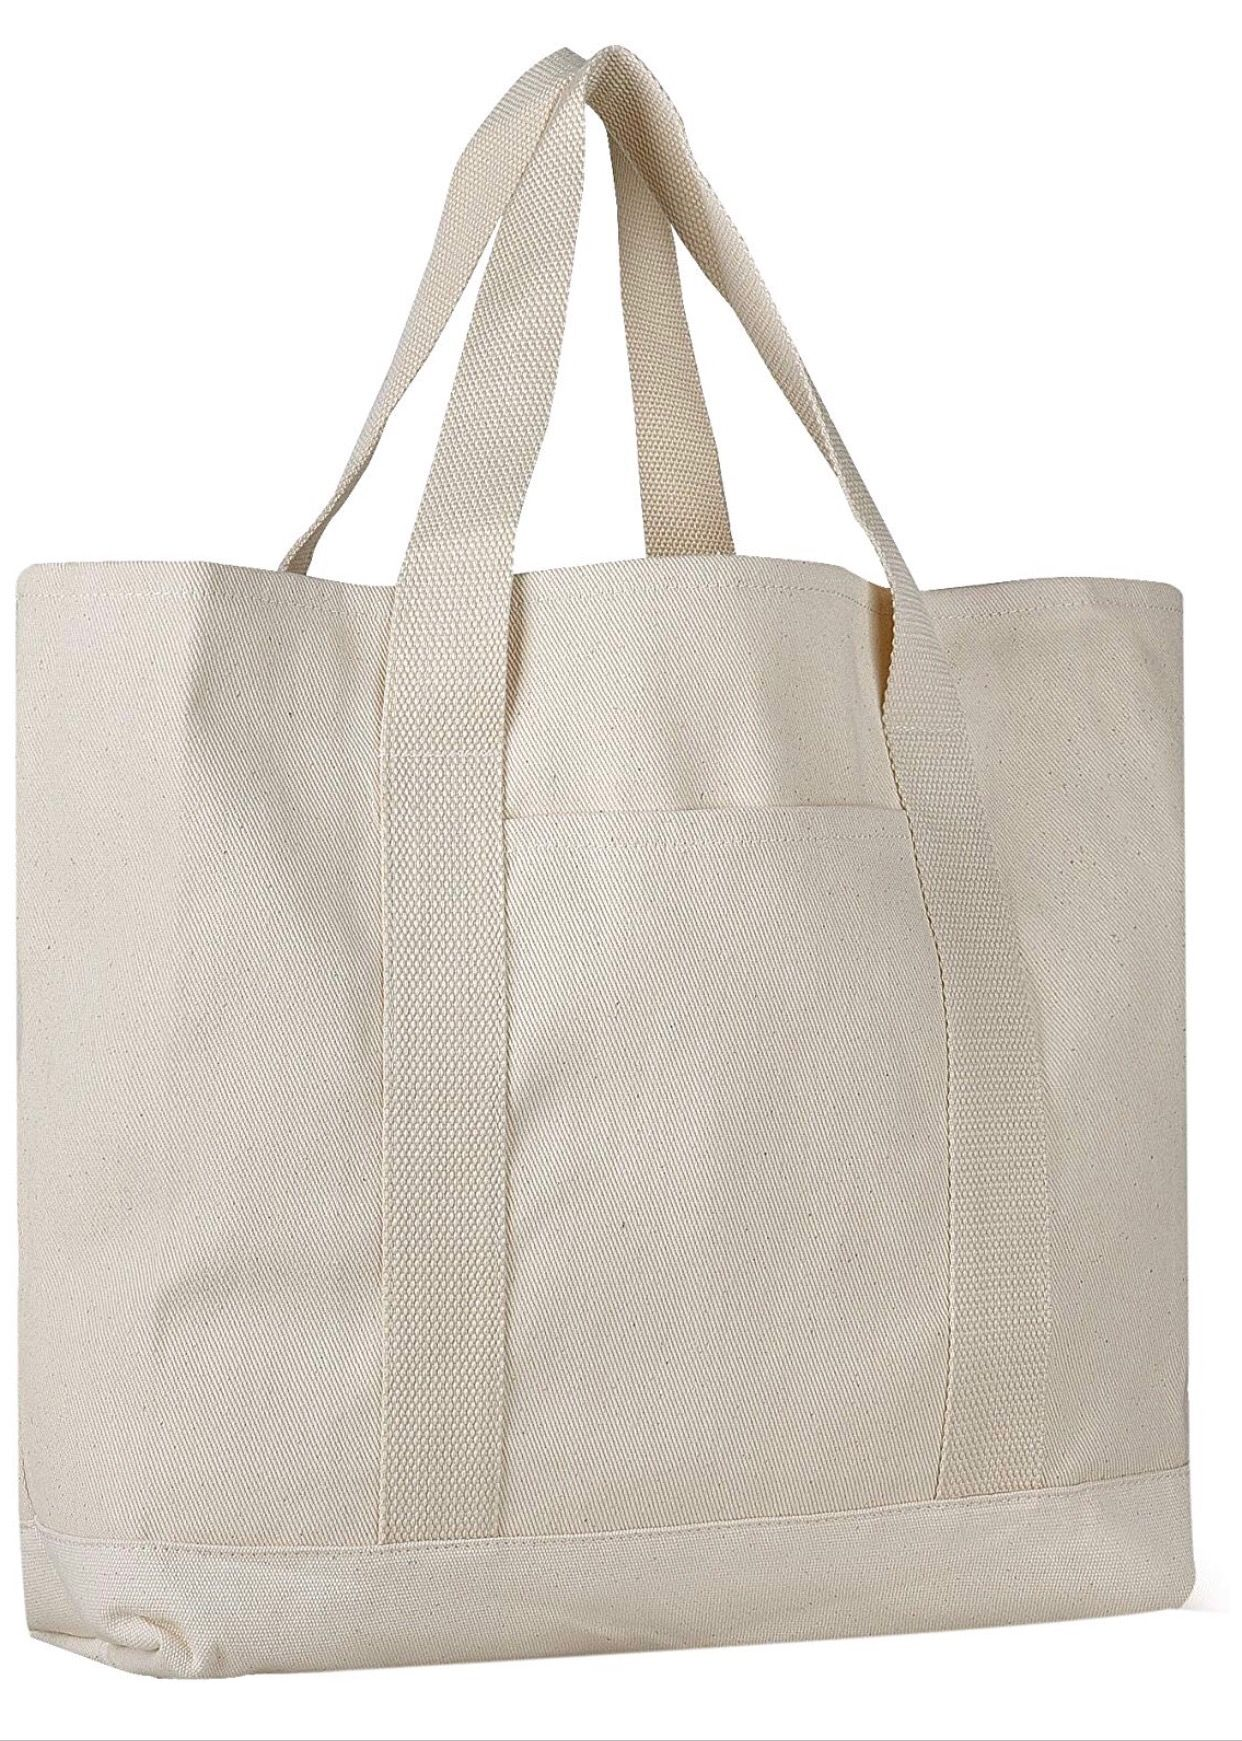 e0578067b43 This tote bag is both meaningful and stylish as a promotional product to be  used as corporate giveaway item or in trade shows.It is highly durable